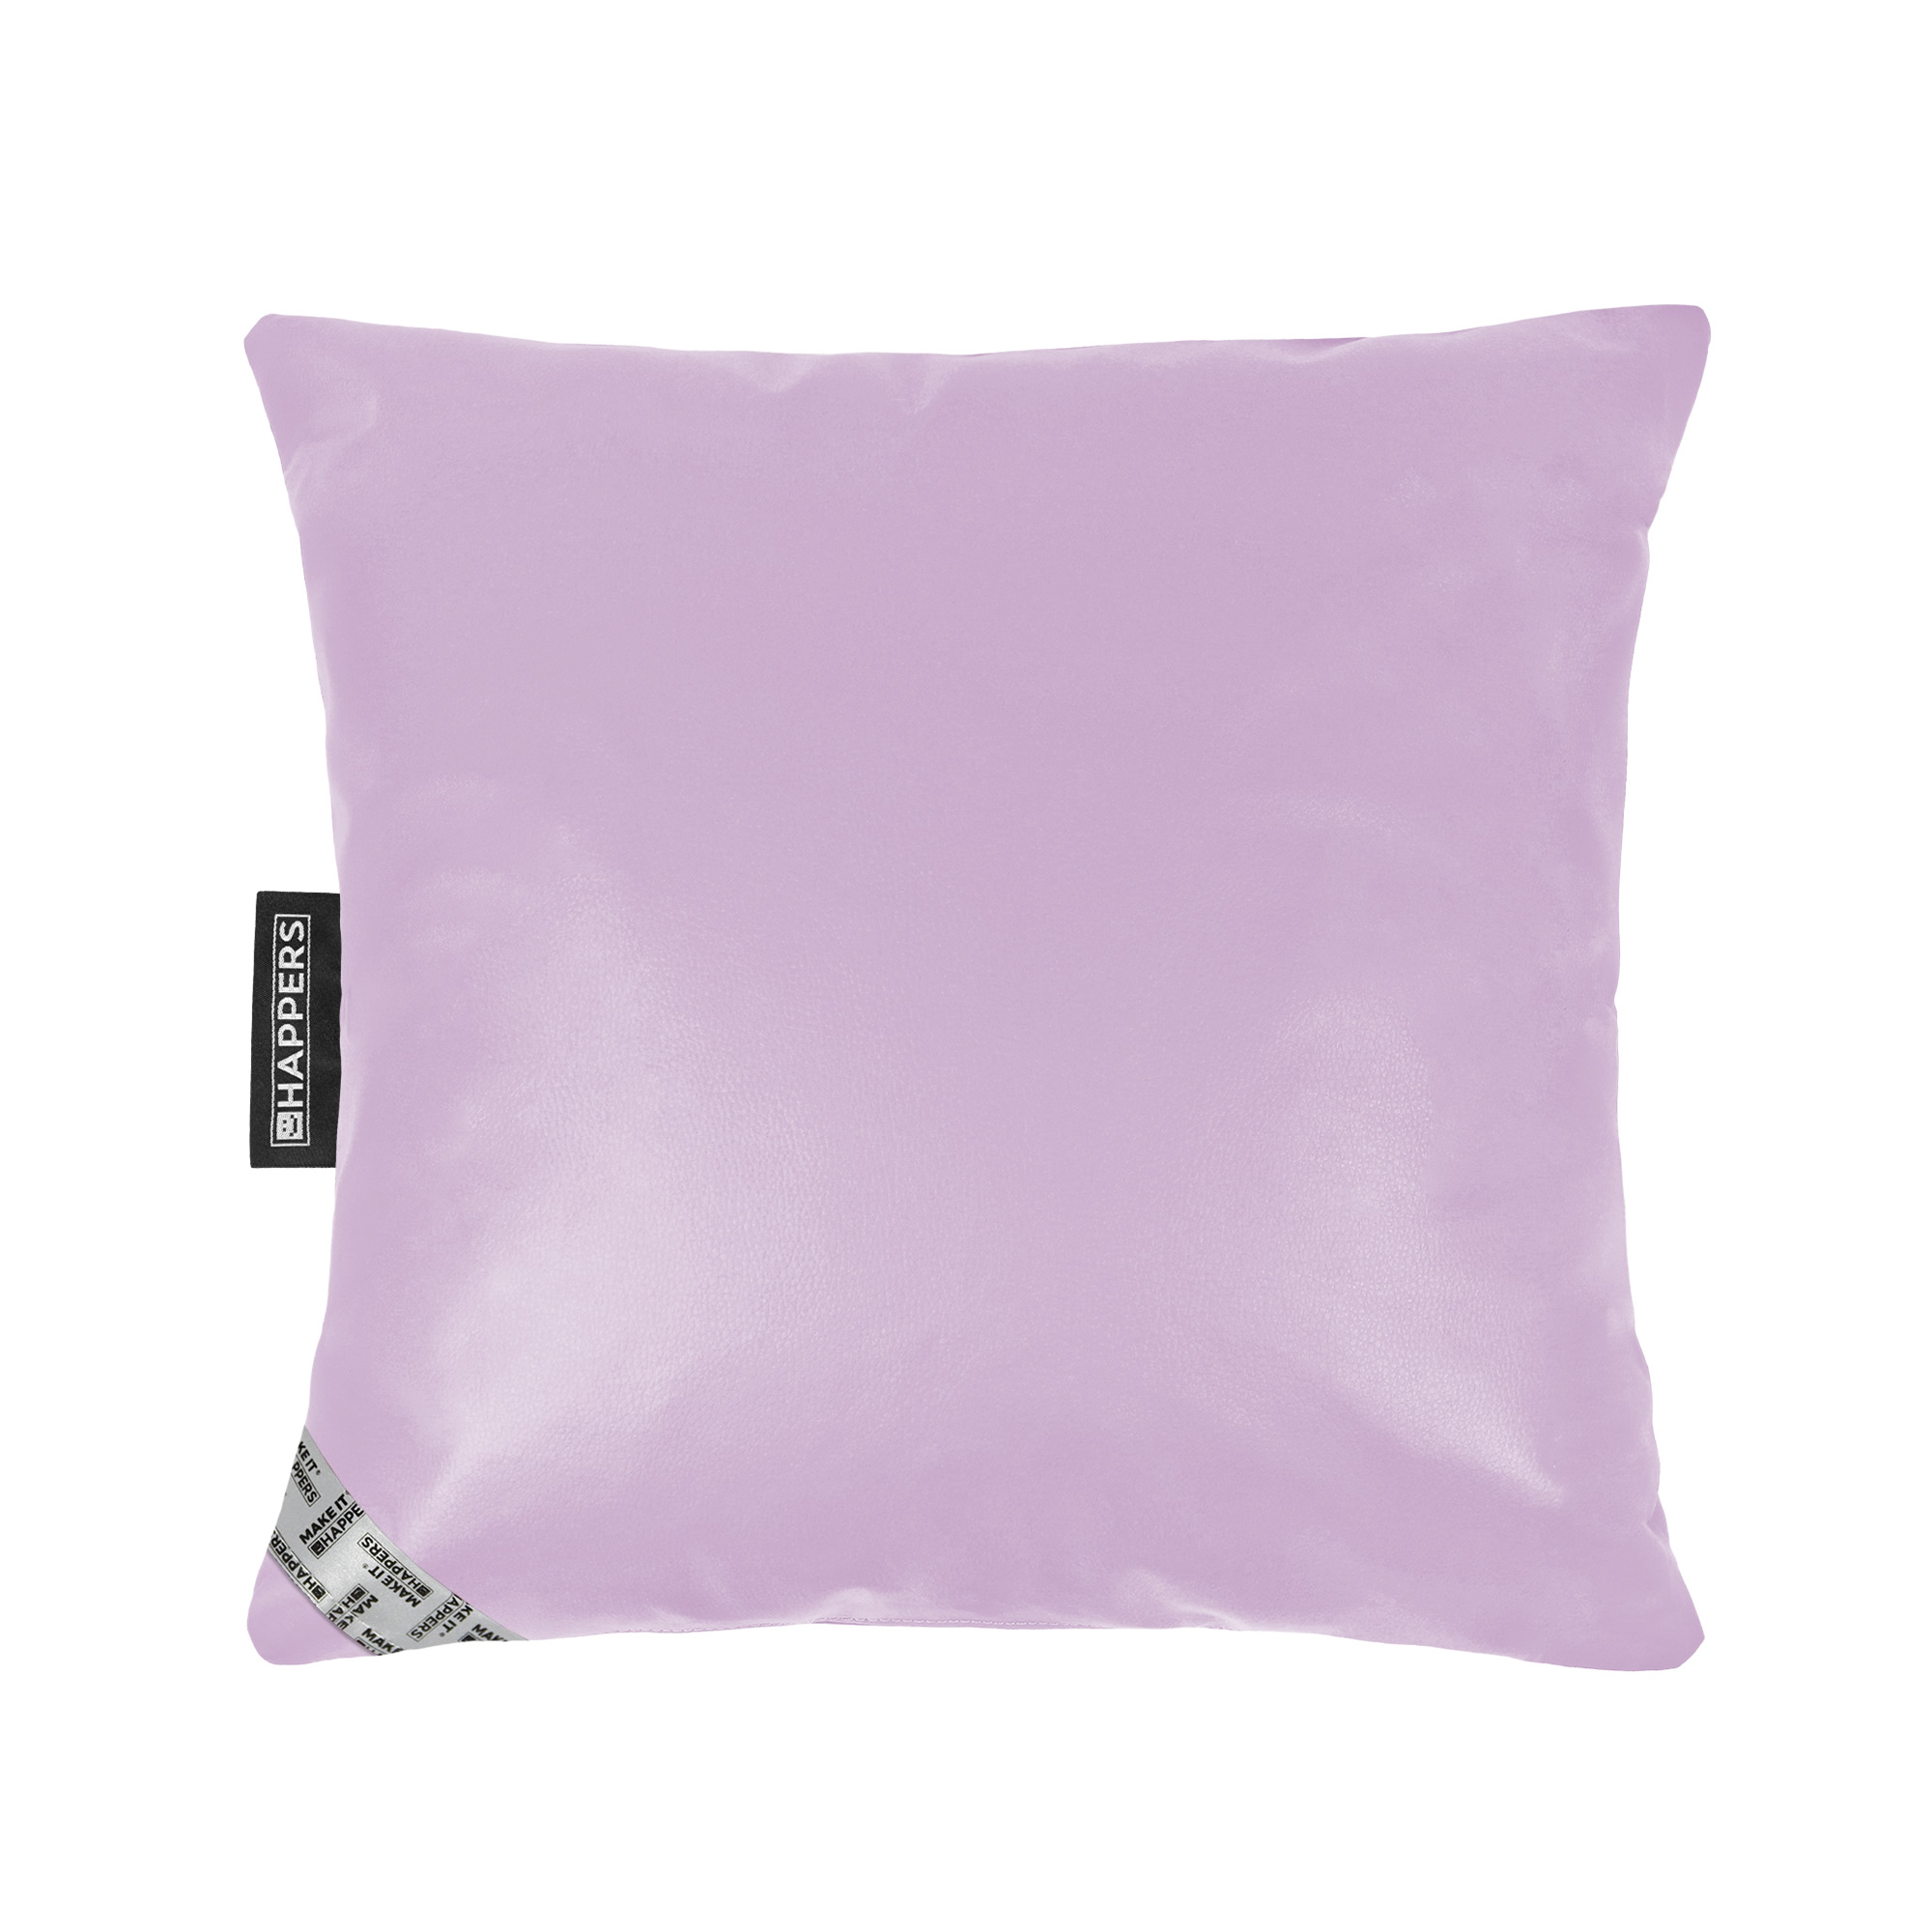 Cojín 45x45 Polipiel Indoor Lavanda Happers | Happers.es